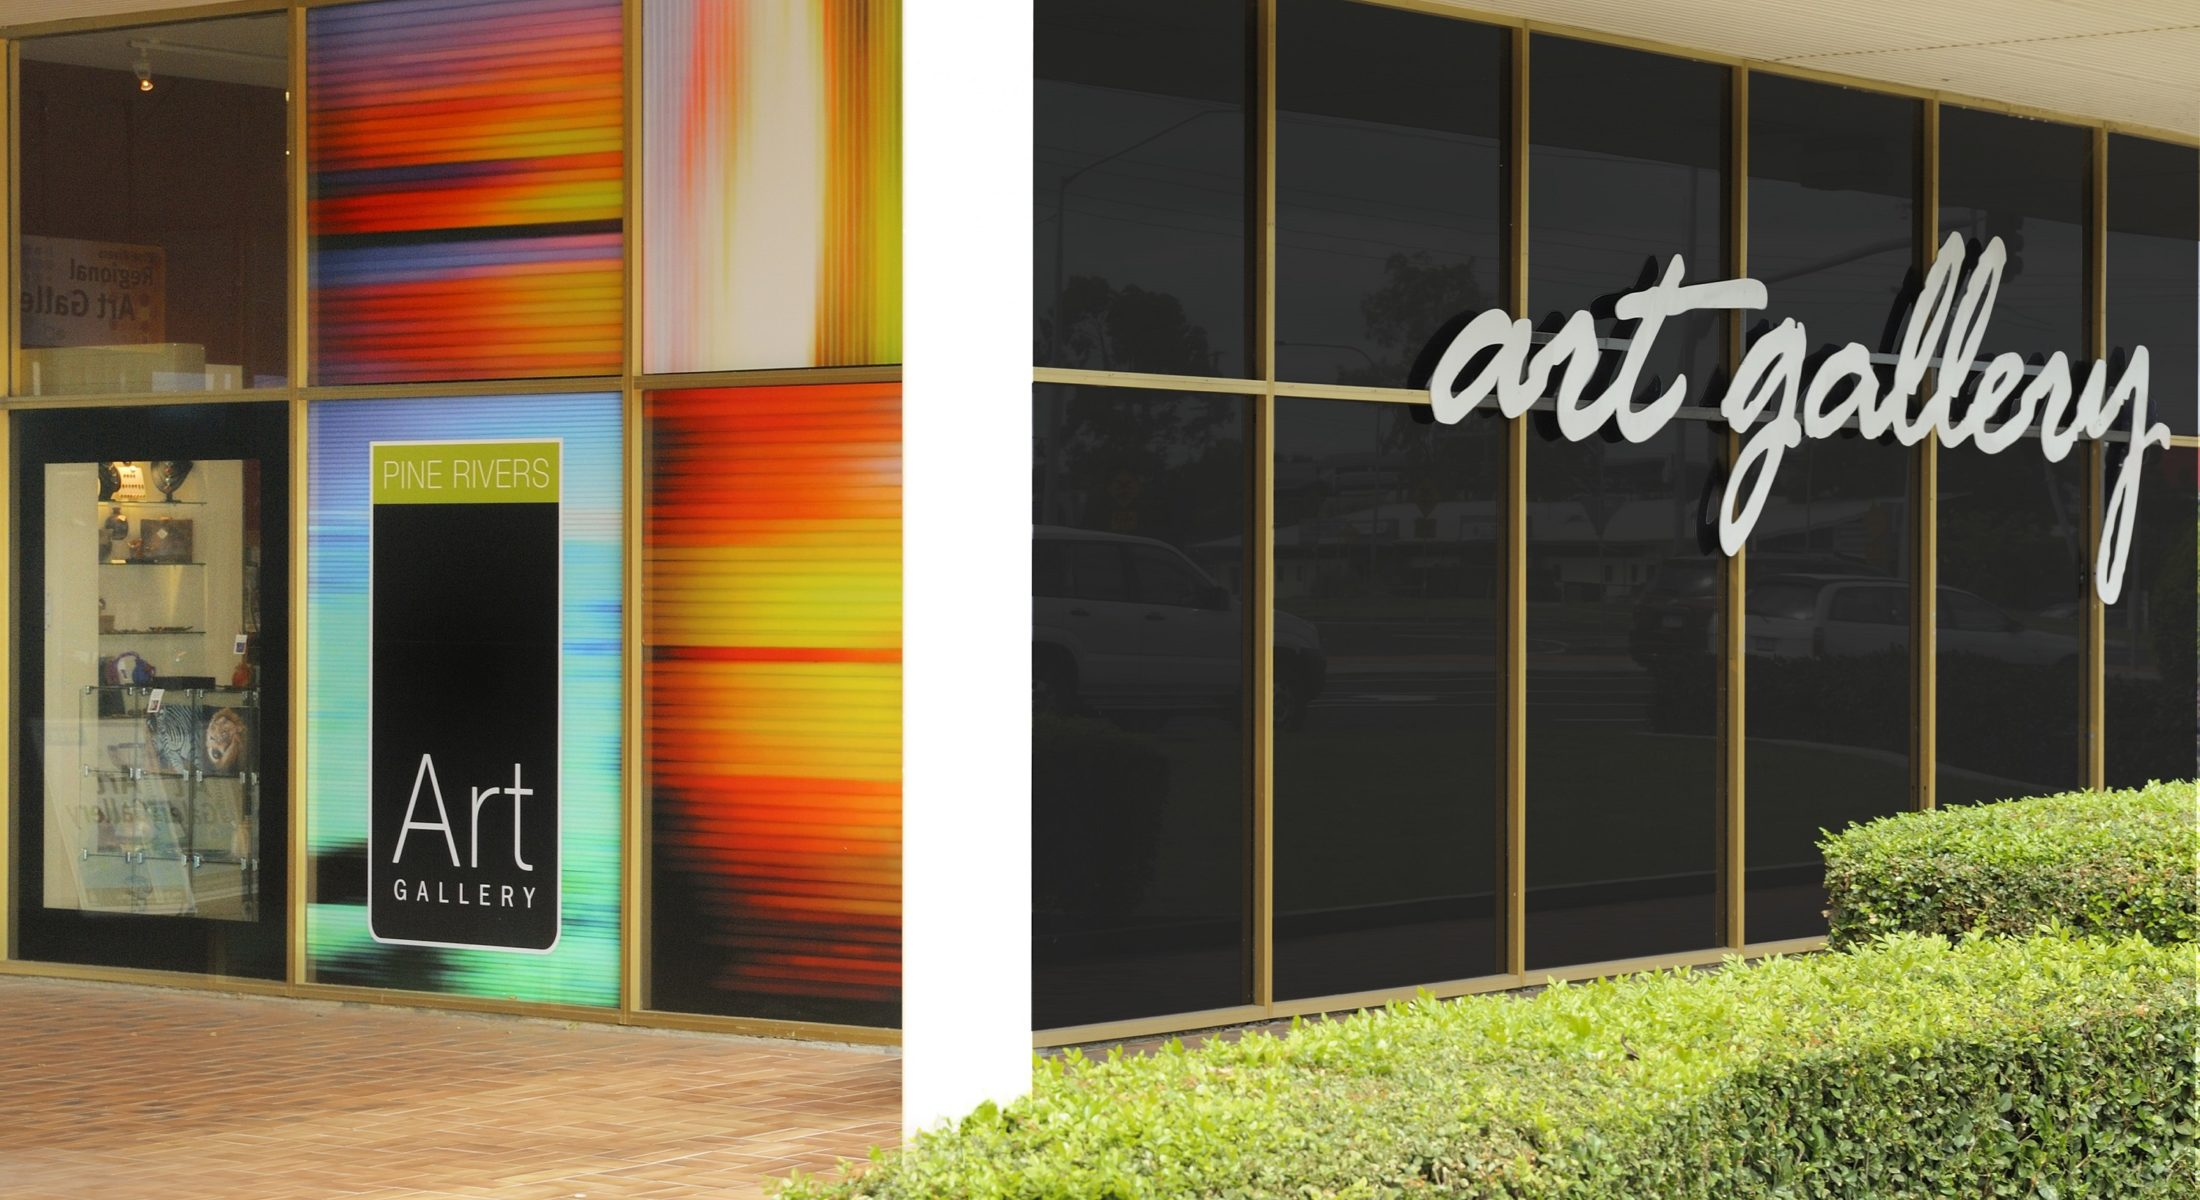 Pine Rivers Art Gallery Moreton Bay Region Queensland Front Entrance